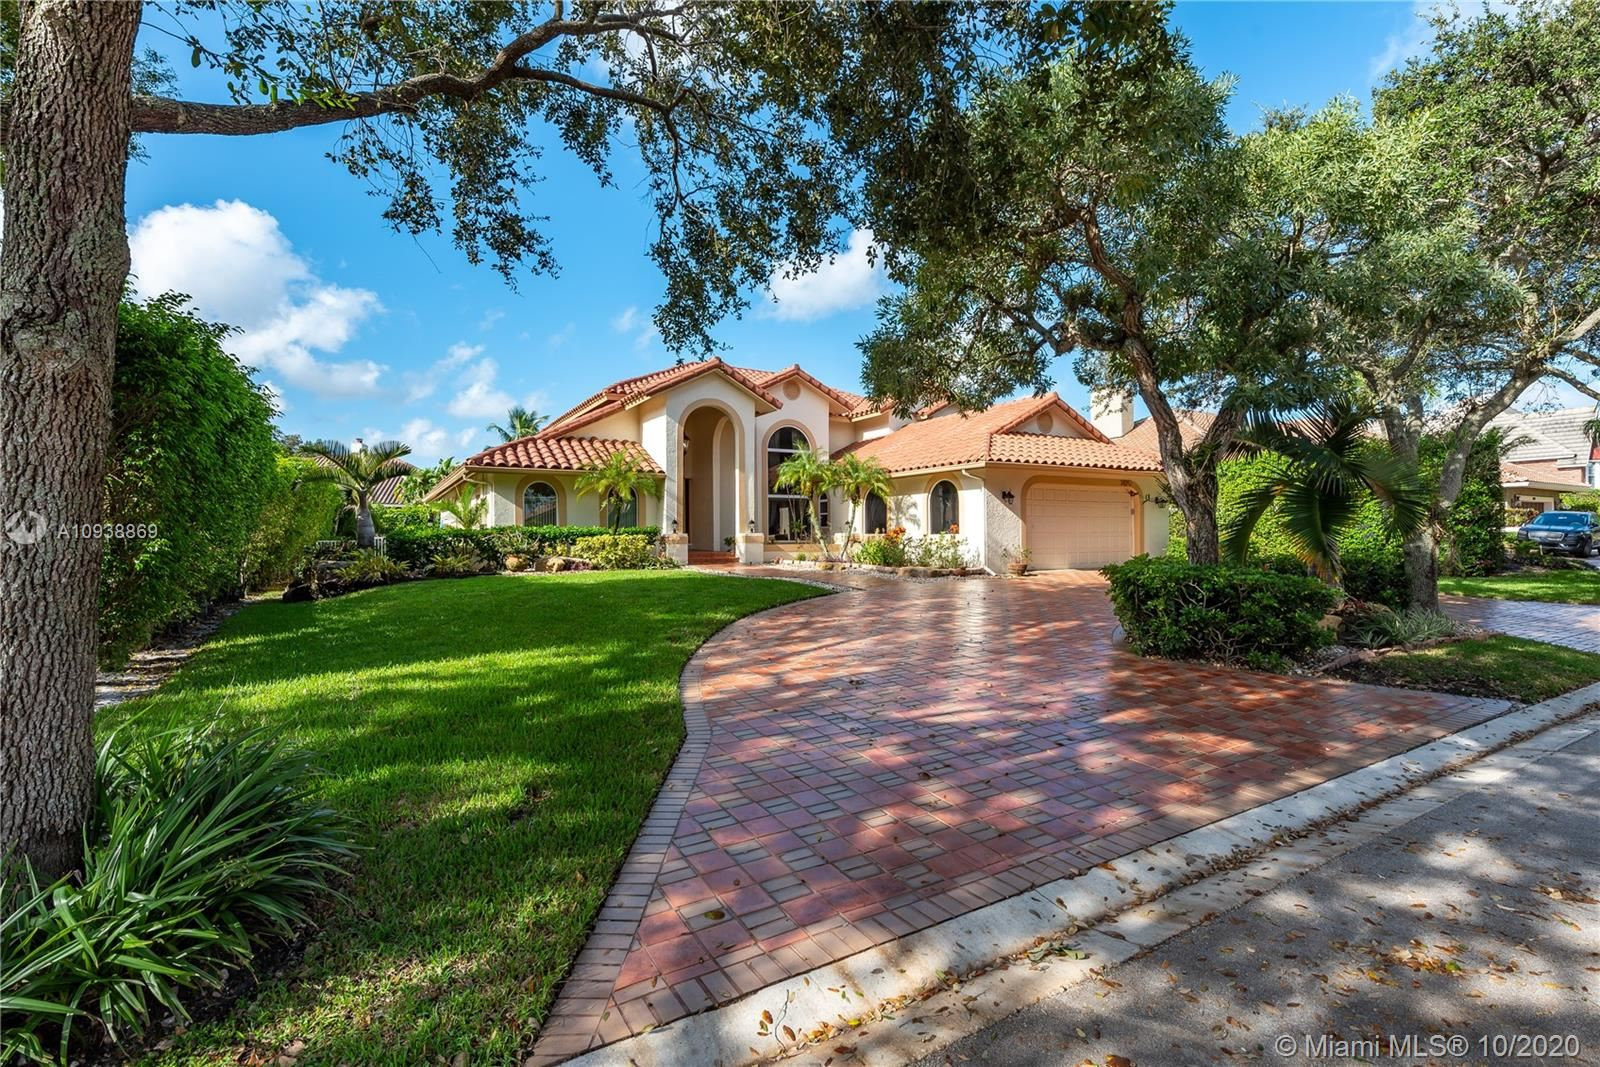 1870 Merion Ln, Coral Springs, FL 33071 - #: A10938869